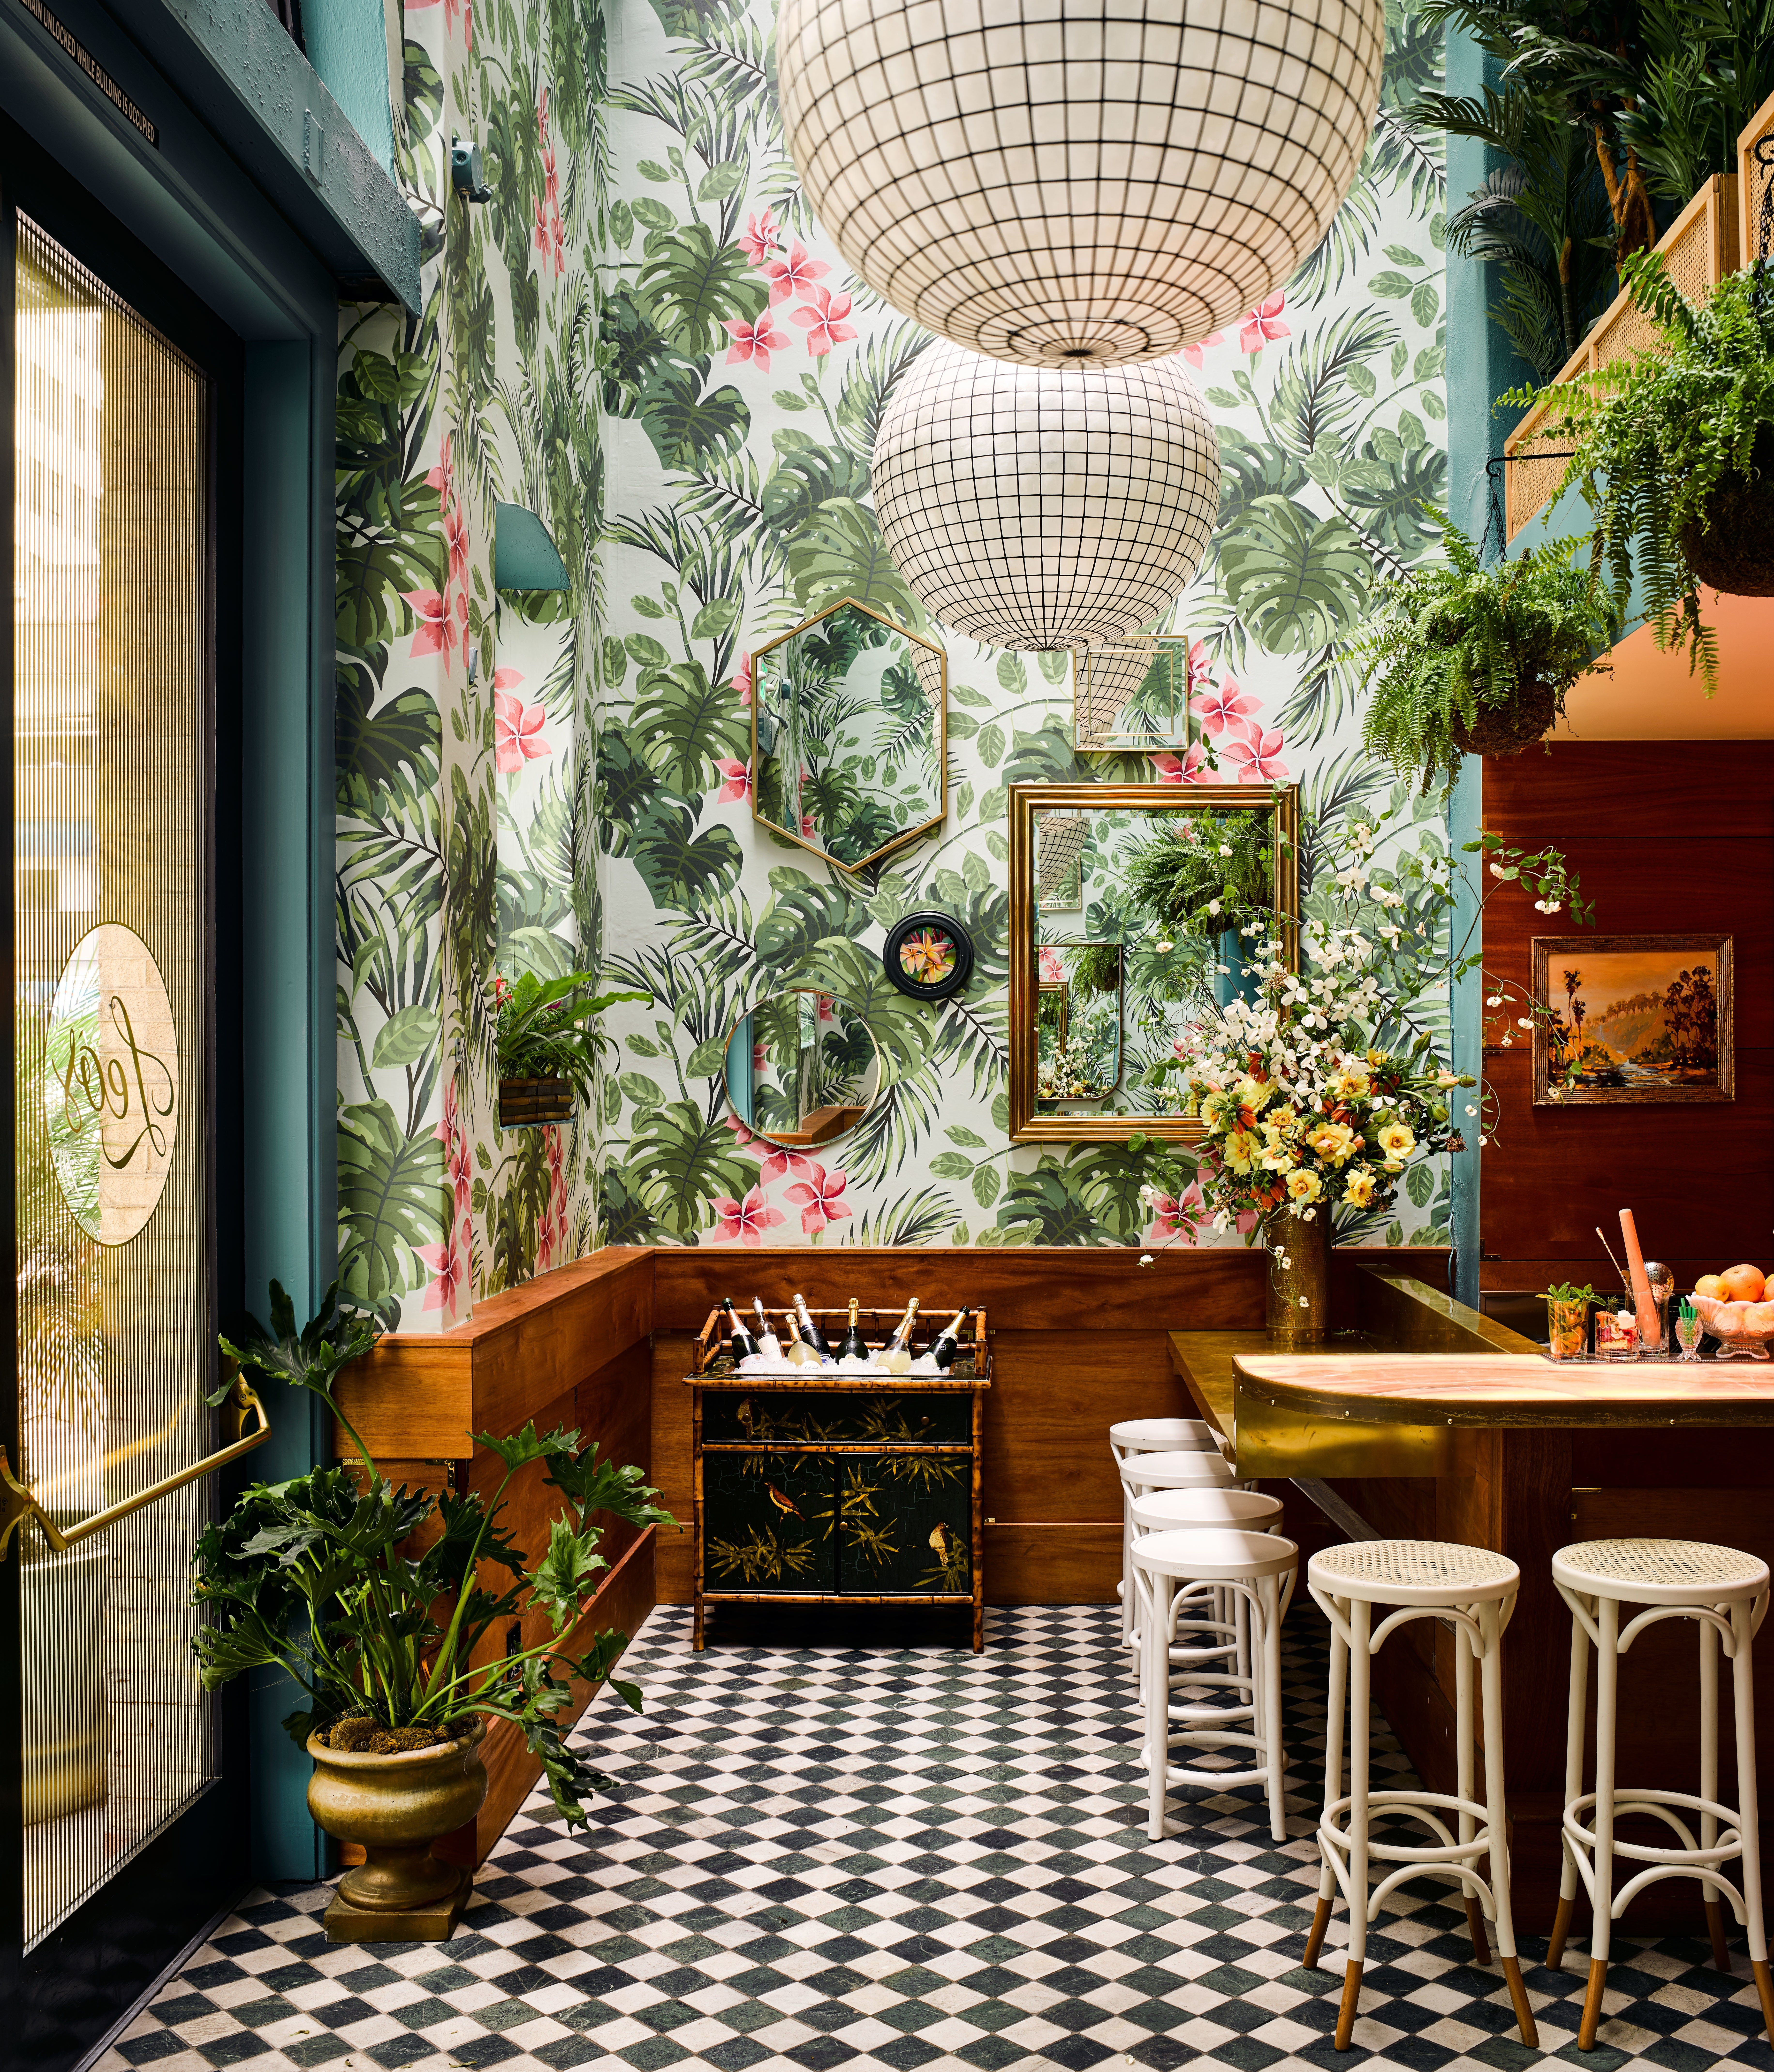 Ken Fulk Designed Leo S Oyster Bar In A Tropical Decor In San Francisco S Financial District With